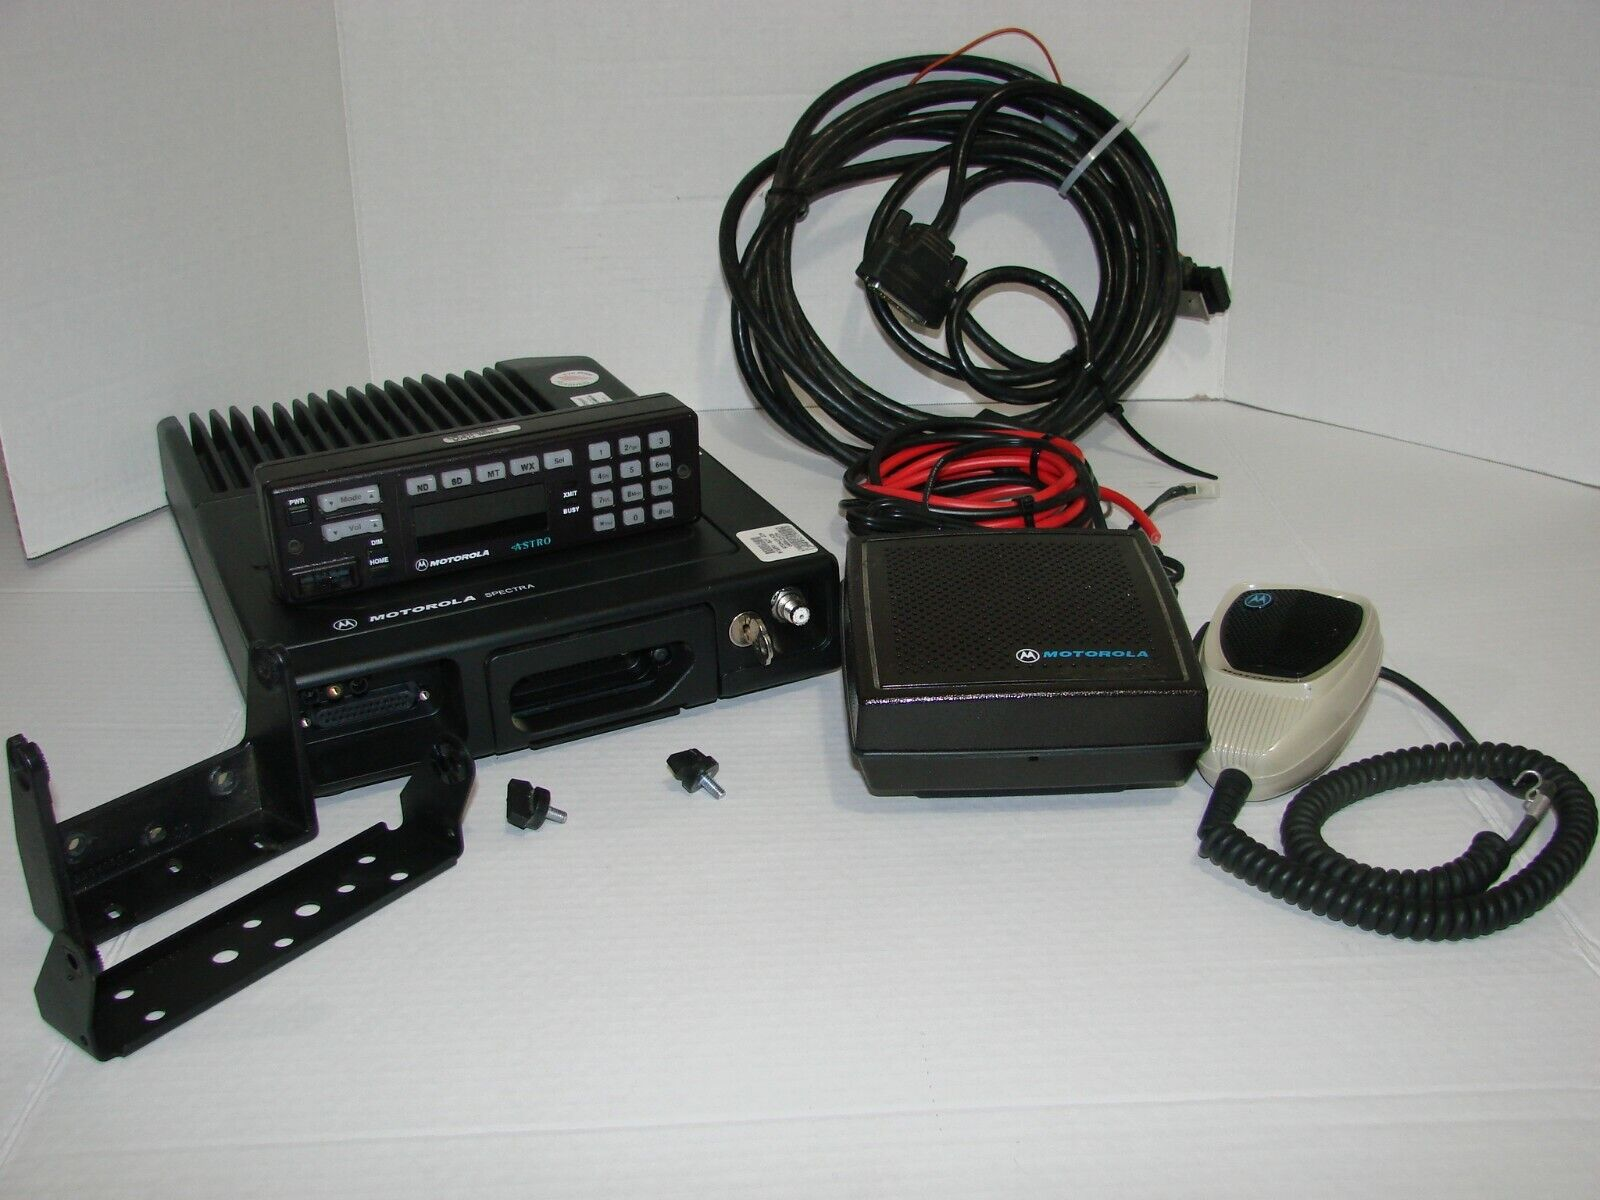 Complete Motorola VHF Astro Spectra Mobile Radio BIN $185 With Free Shipping. Buy it now for 185.00